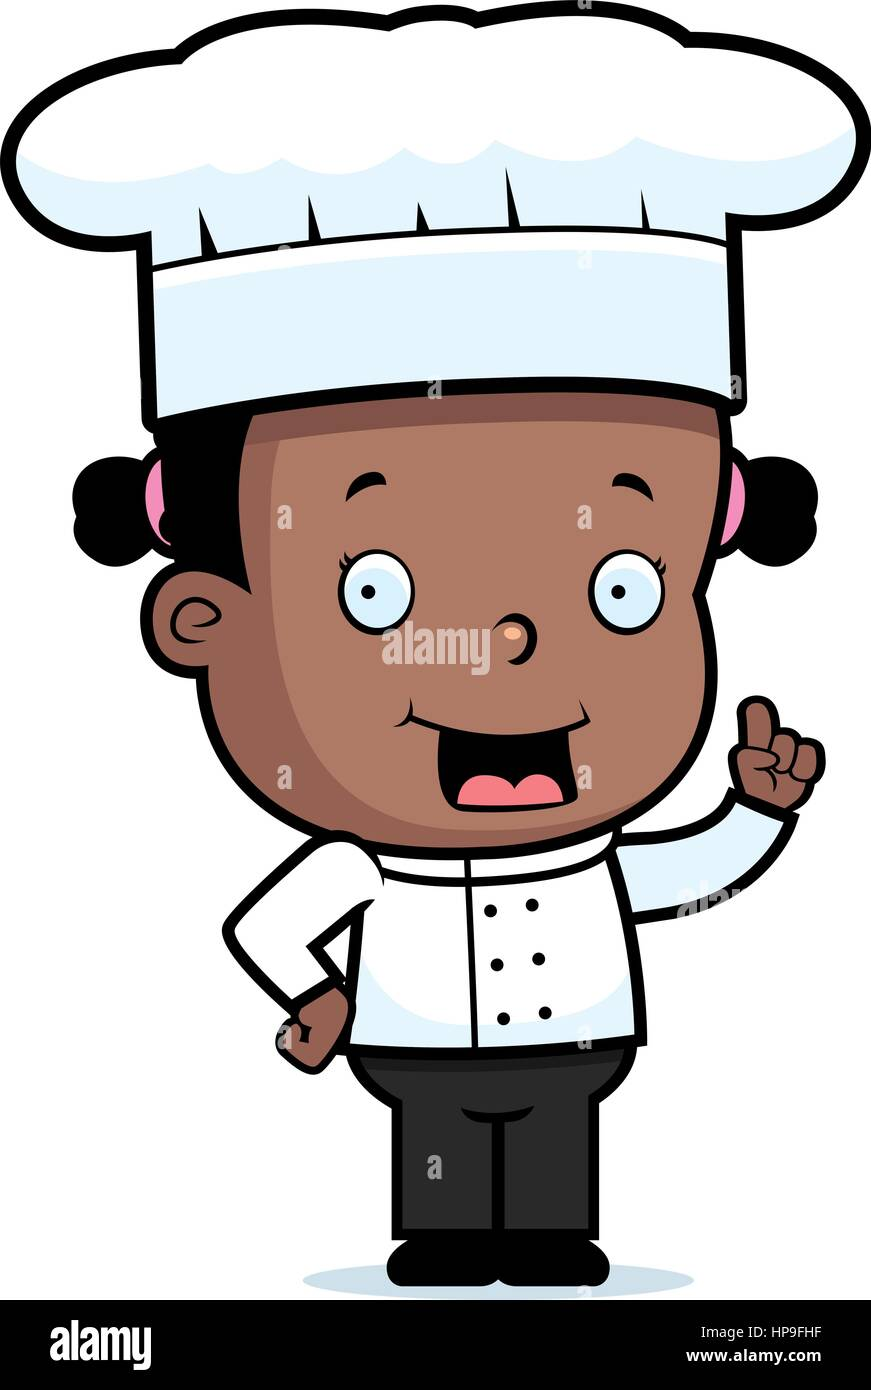 A happy cartoon child chef standing and smiling Stock Vector Art    Illustration b576facd678f